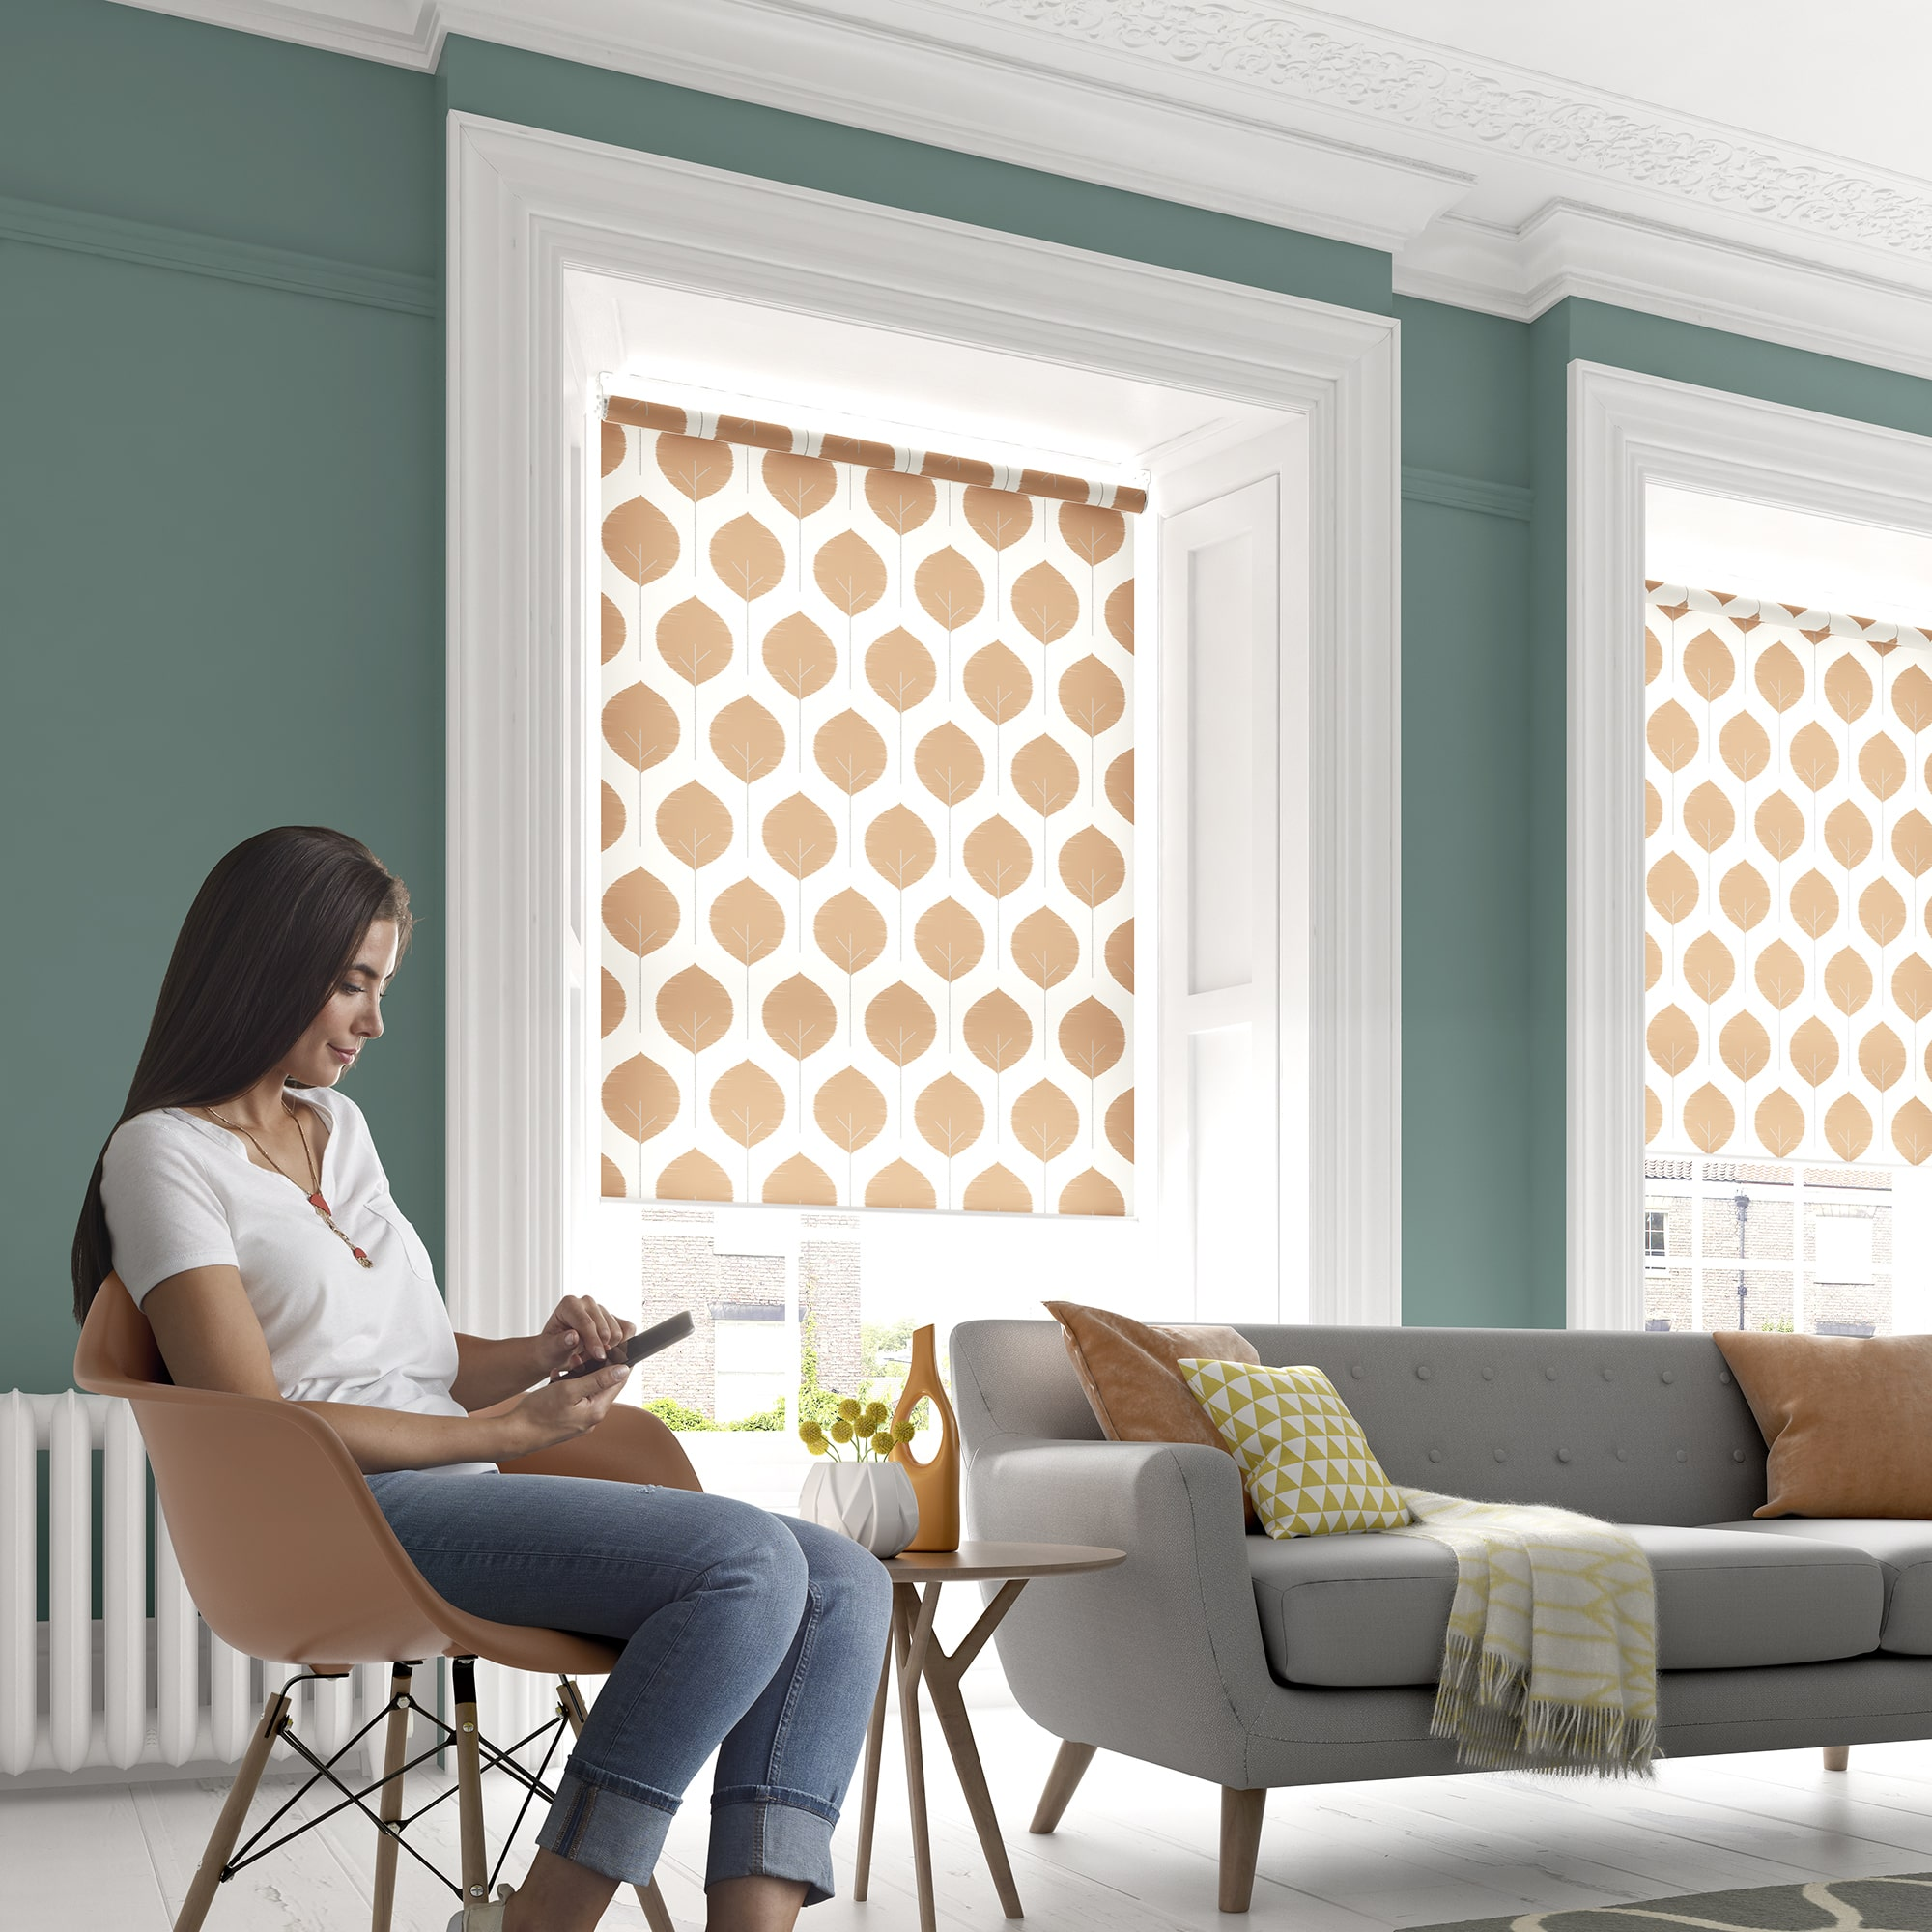 buy blinds online hull, roller blinds hull, vertical blinds hull